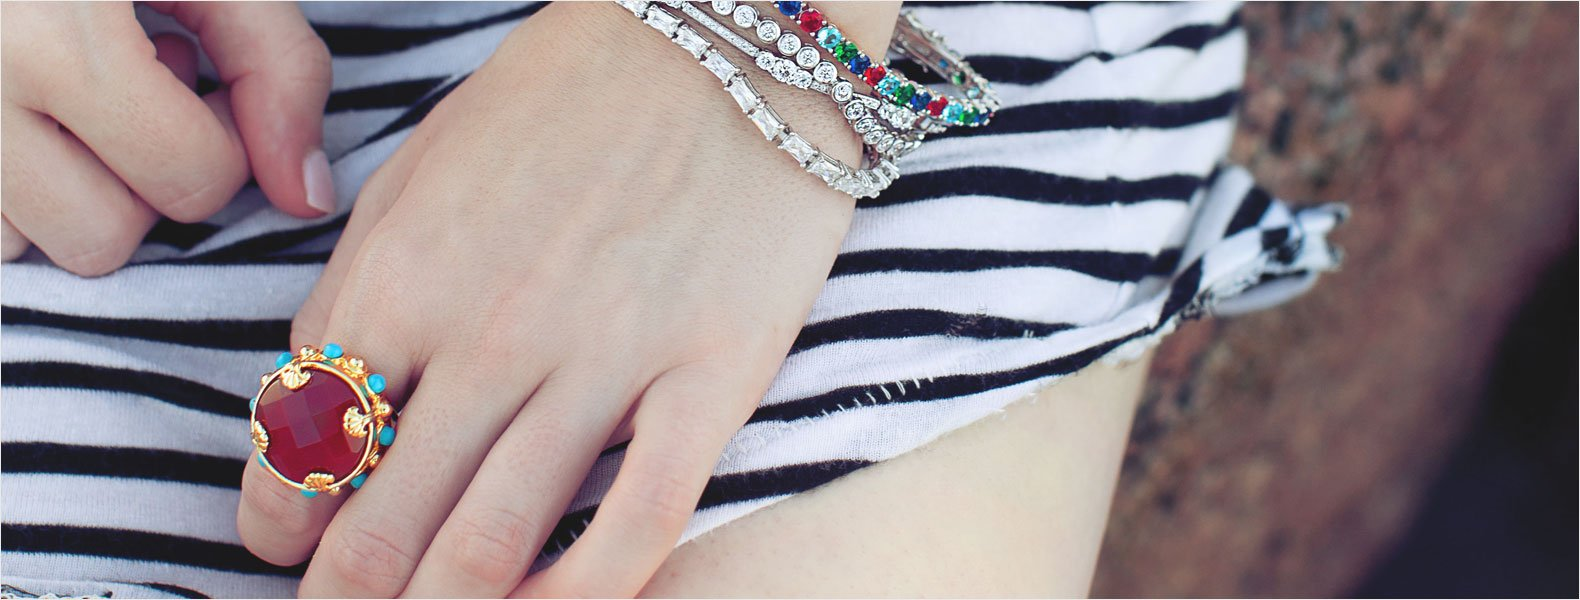 Stacked jewelry for cozy, cool accessorizing Layer-Worthy<br>Lovelies